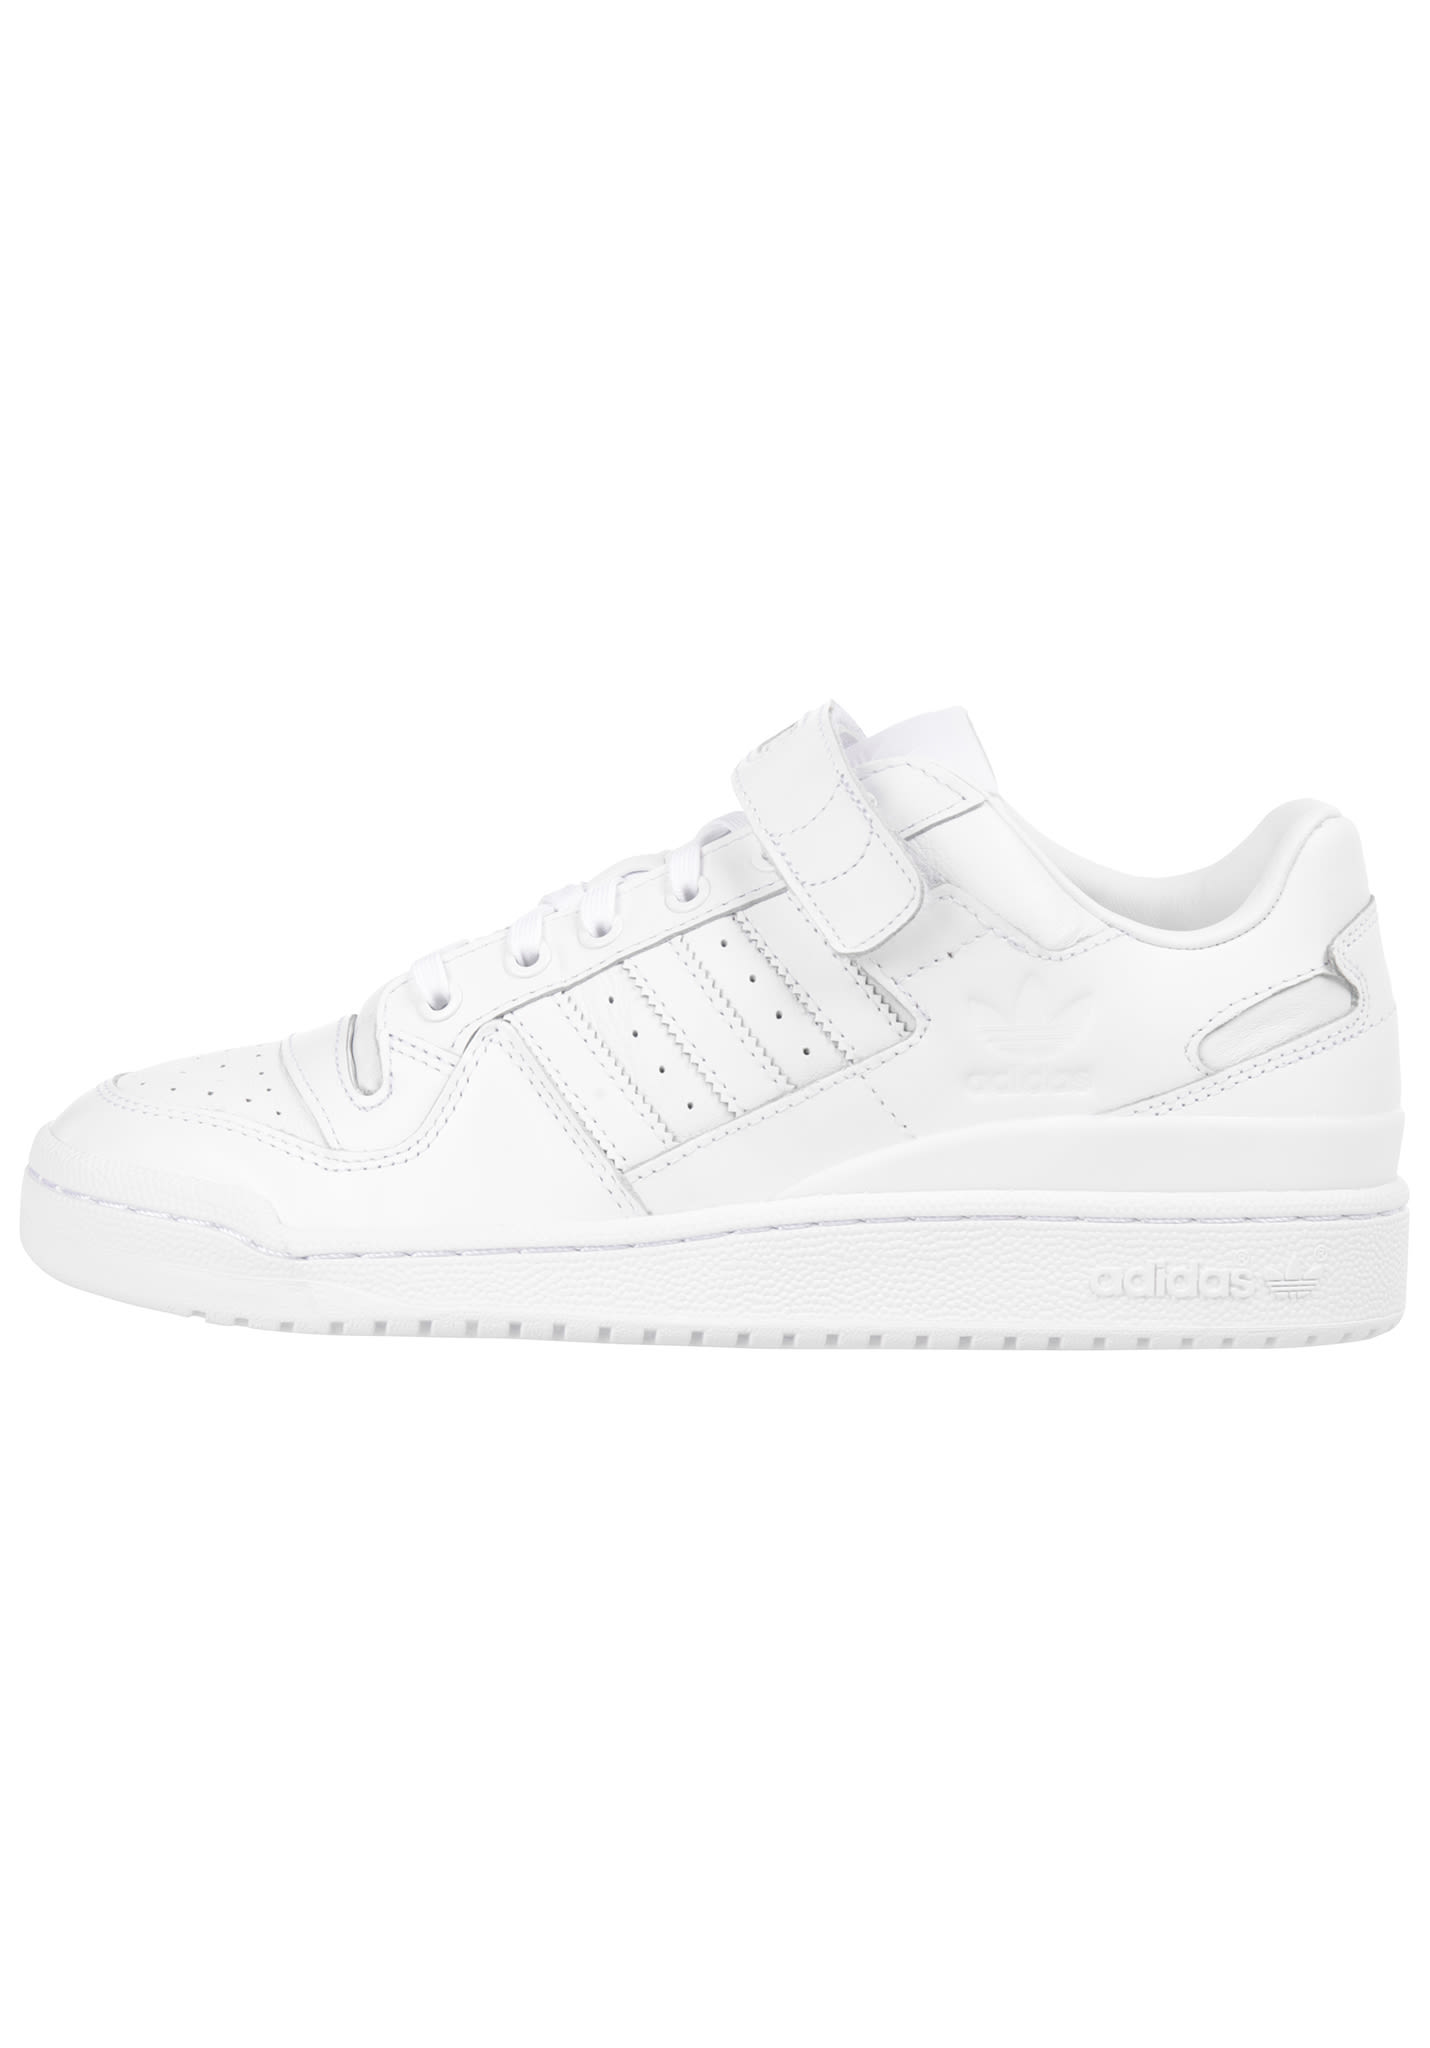 outlet store 4c893 f13f3 ADIDAS ORIGINALS Forum Lo Refined - Sneakers for Men - White - Planet Sports